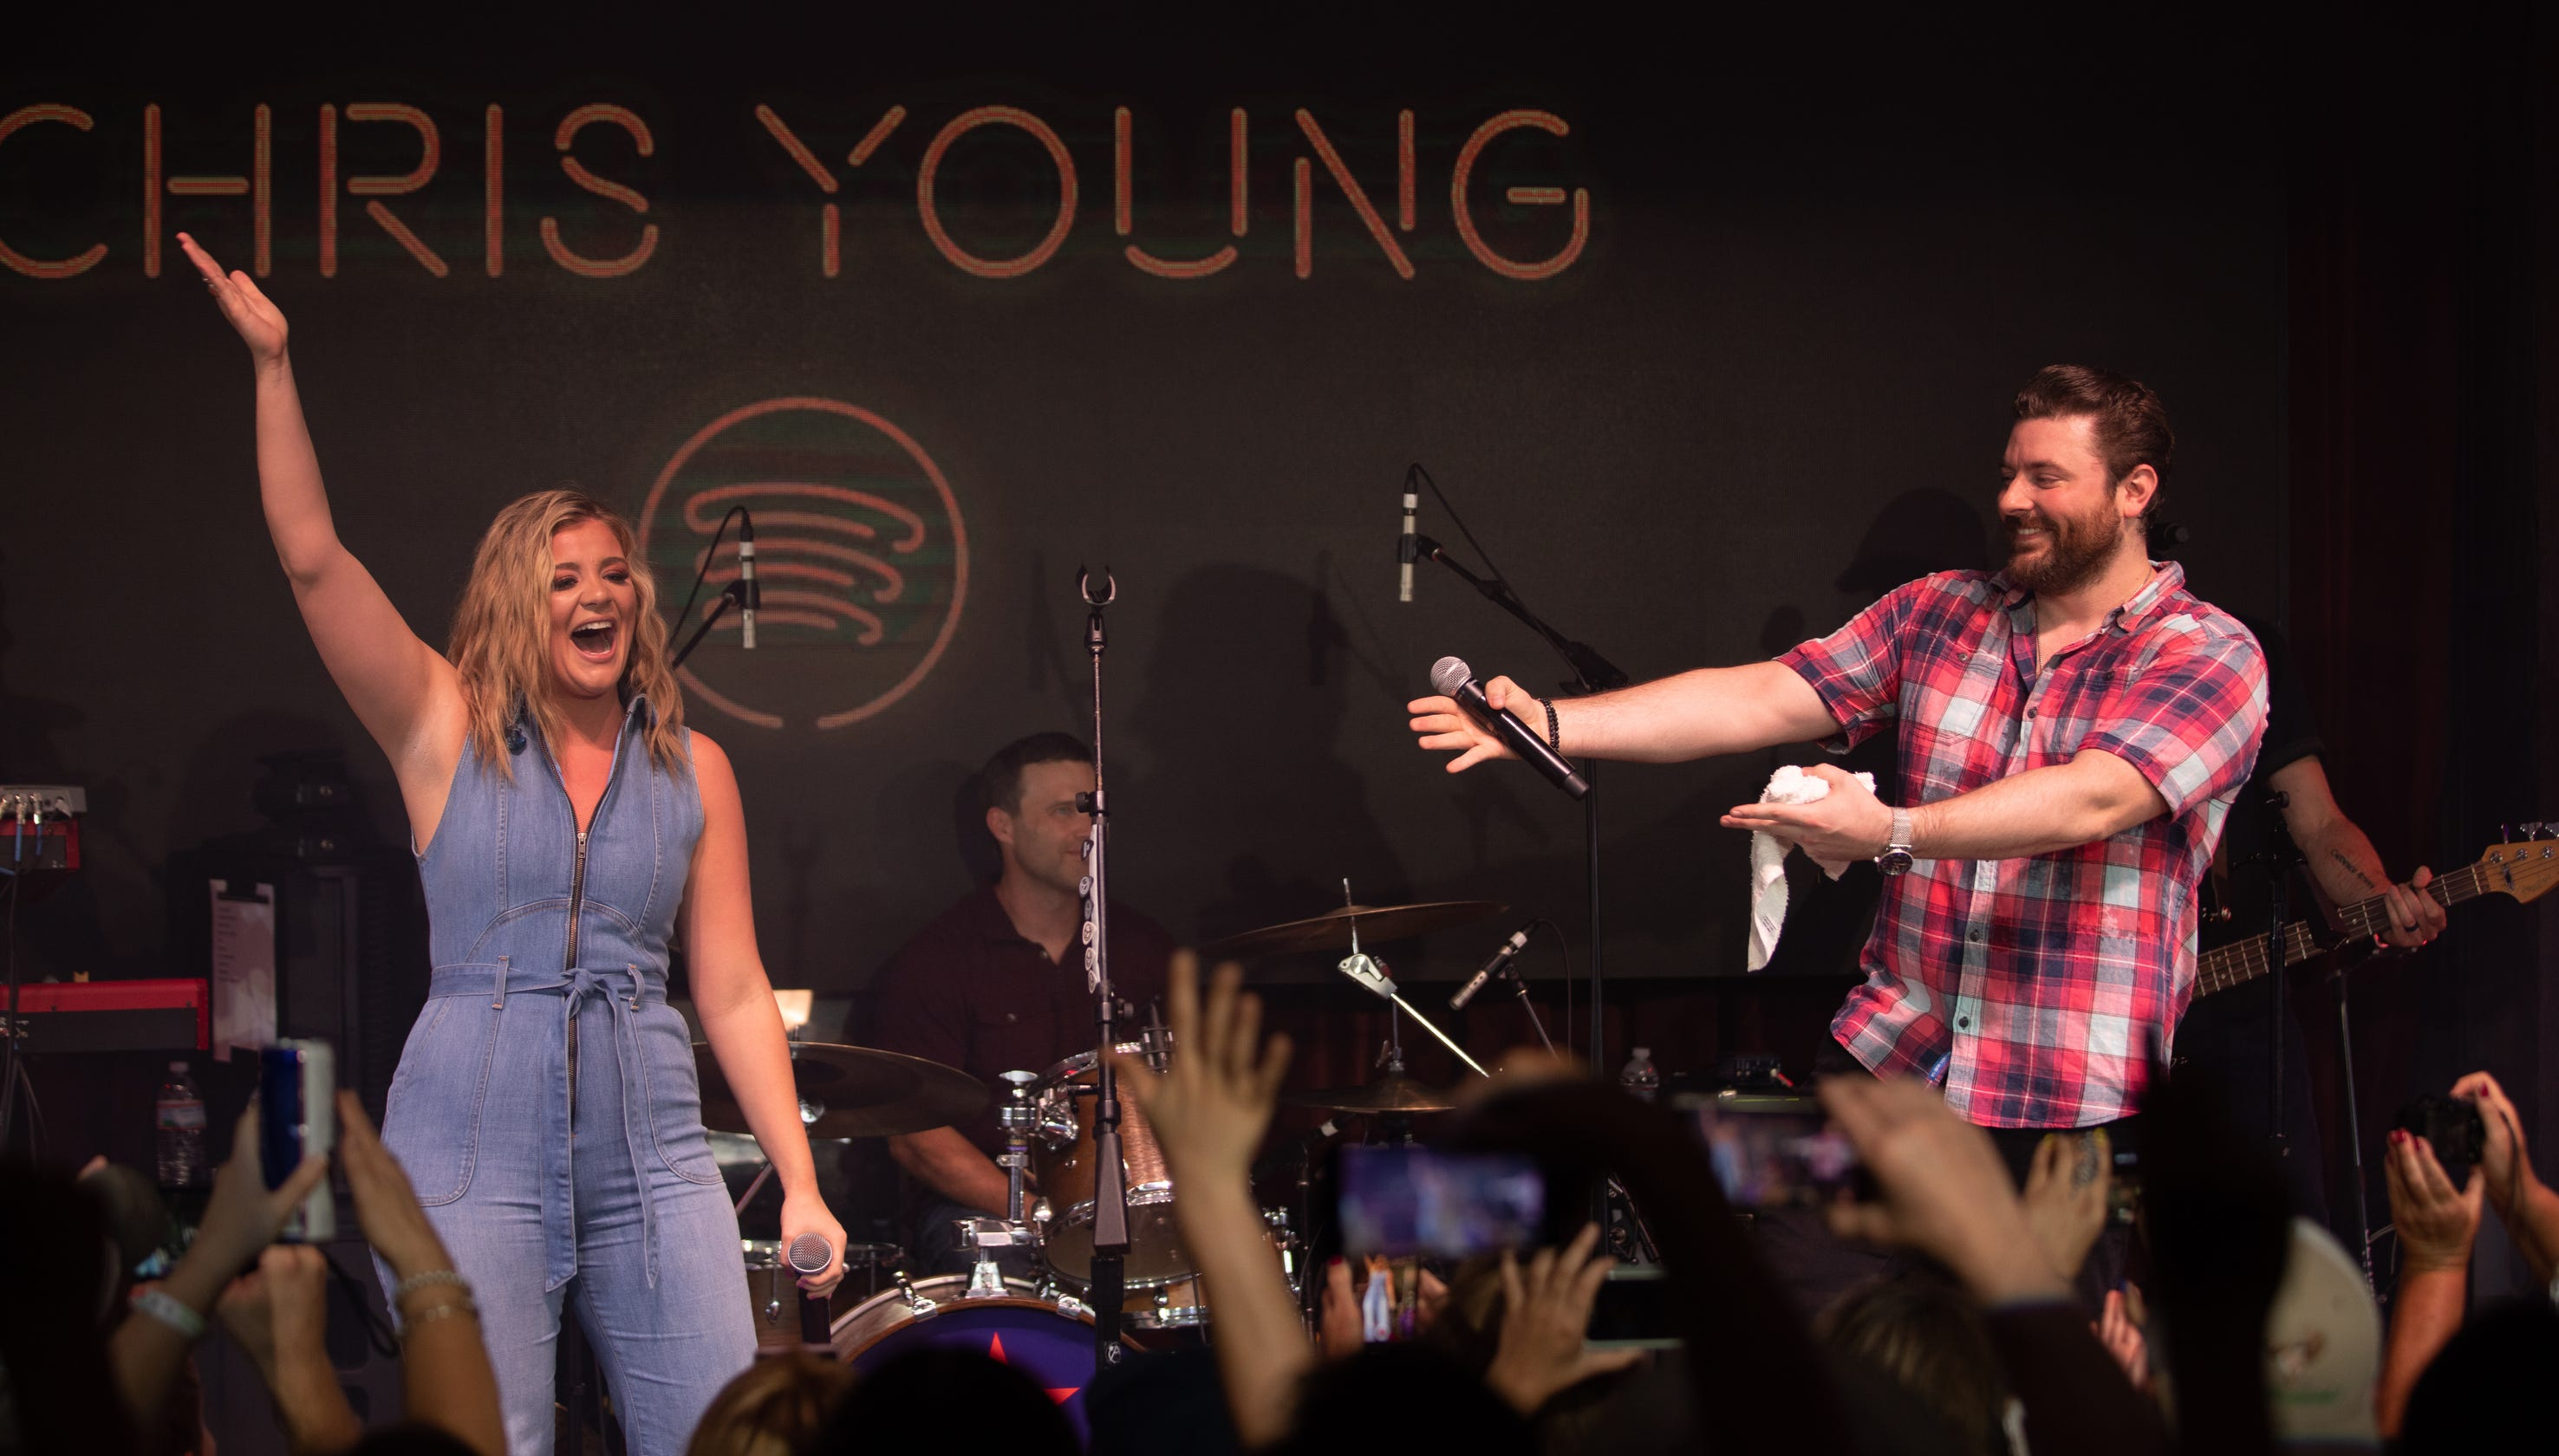 Chris Young cries during new song 'Drowning,' unveils Lauren Alaina duet